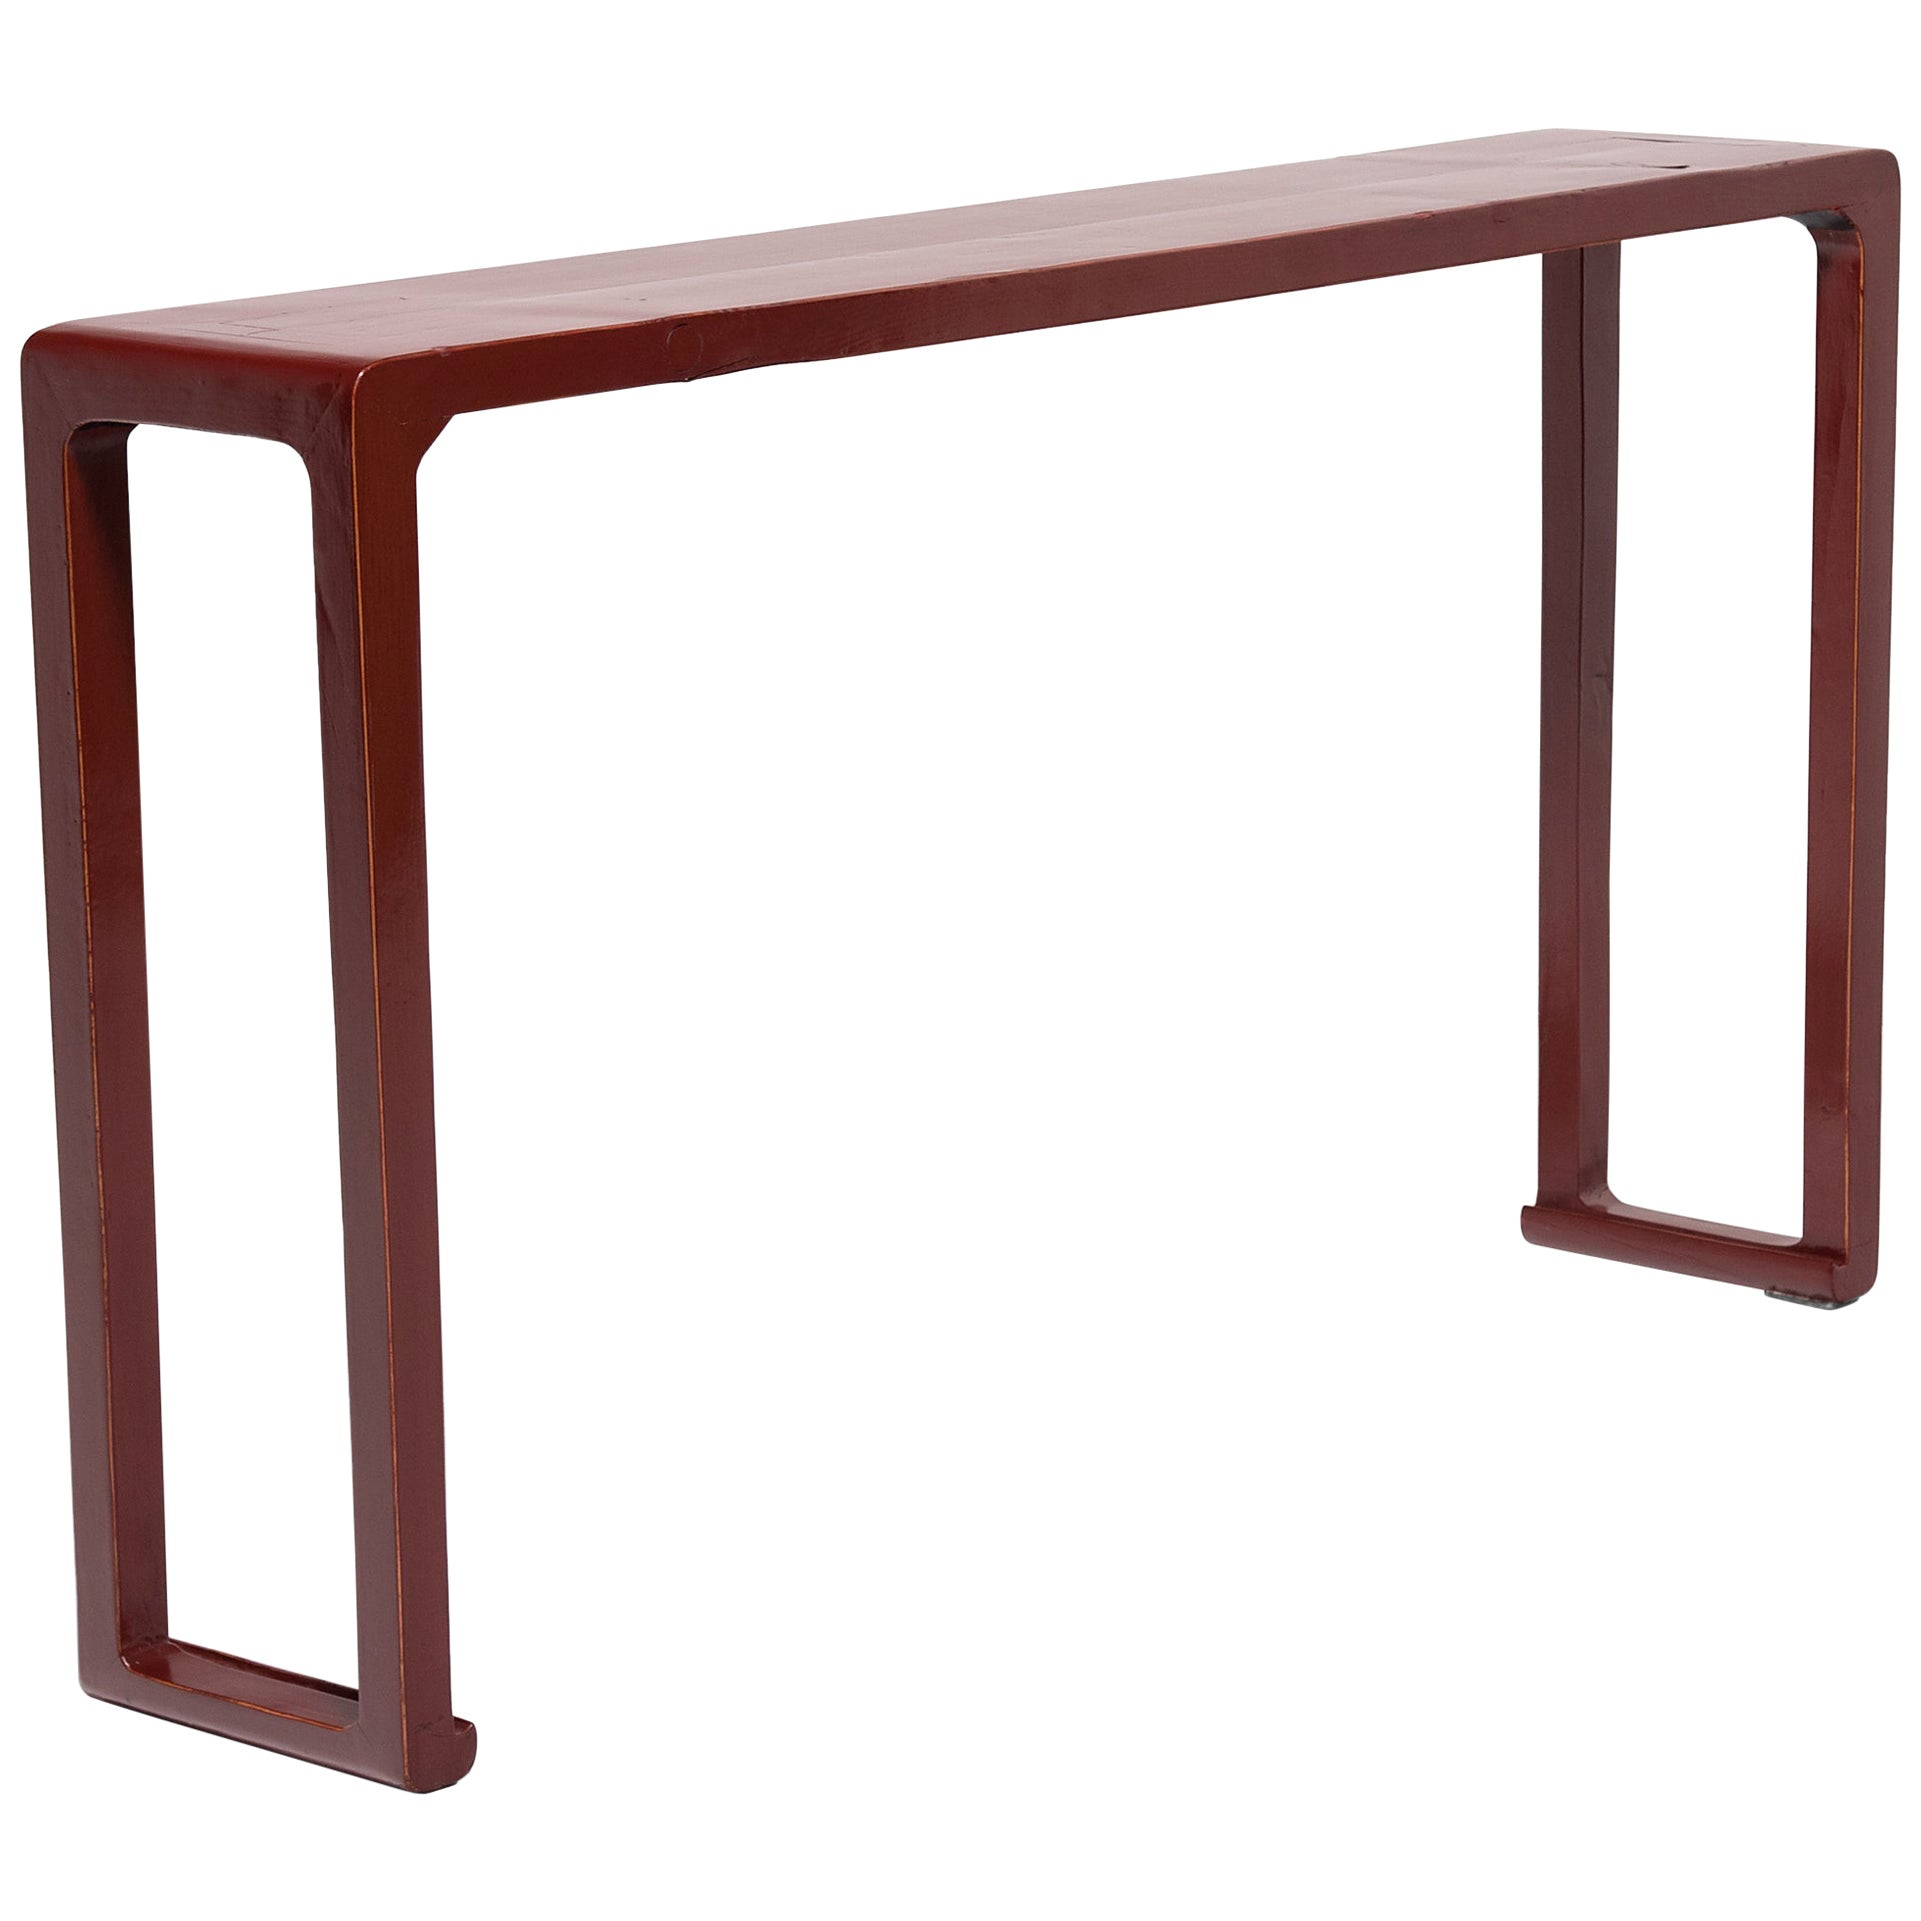 Chinese Red Lacquer Altar Table, circa 1900